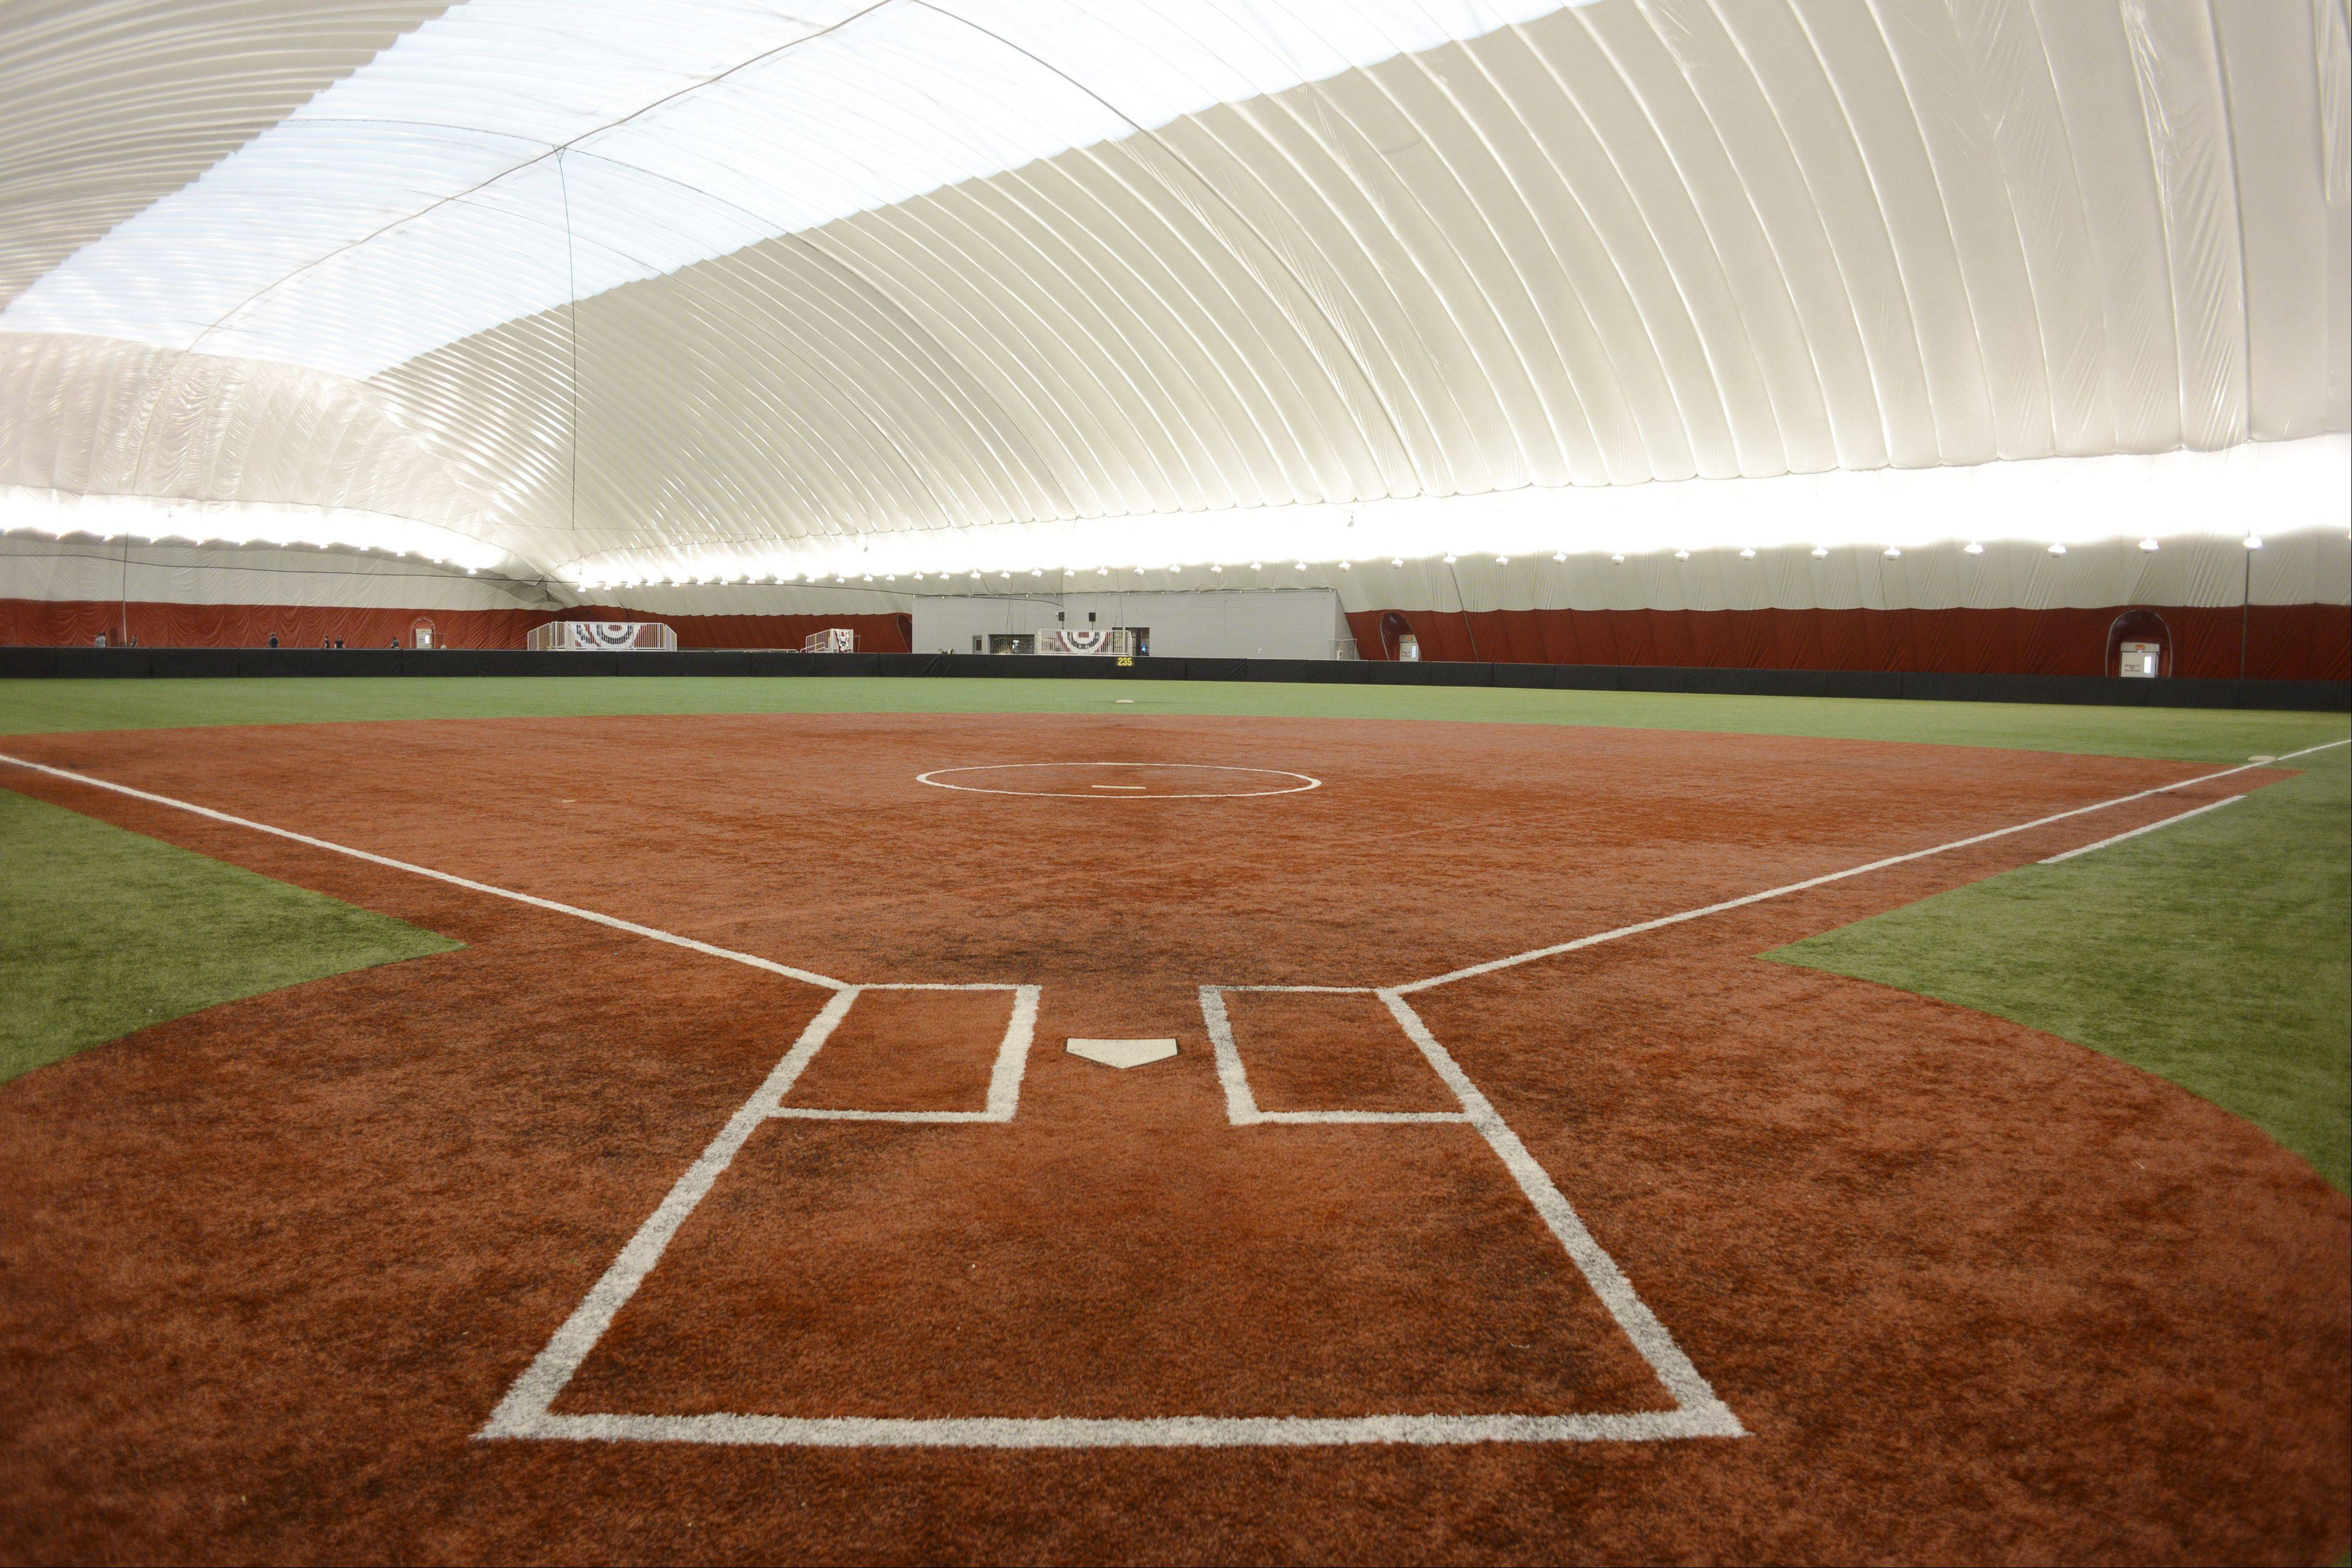 This is one of two fields at the Dome at the Ballpark in Rosemont.